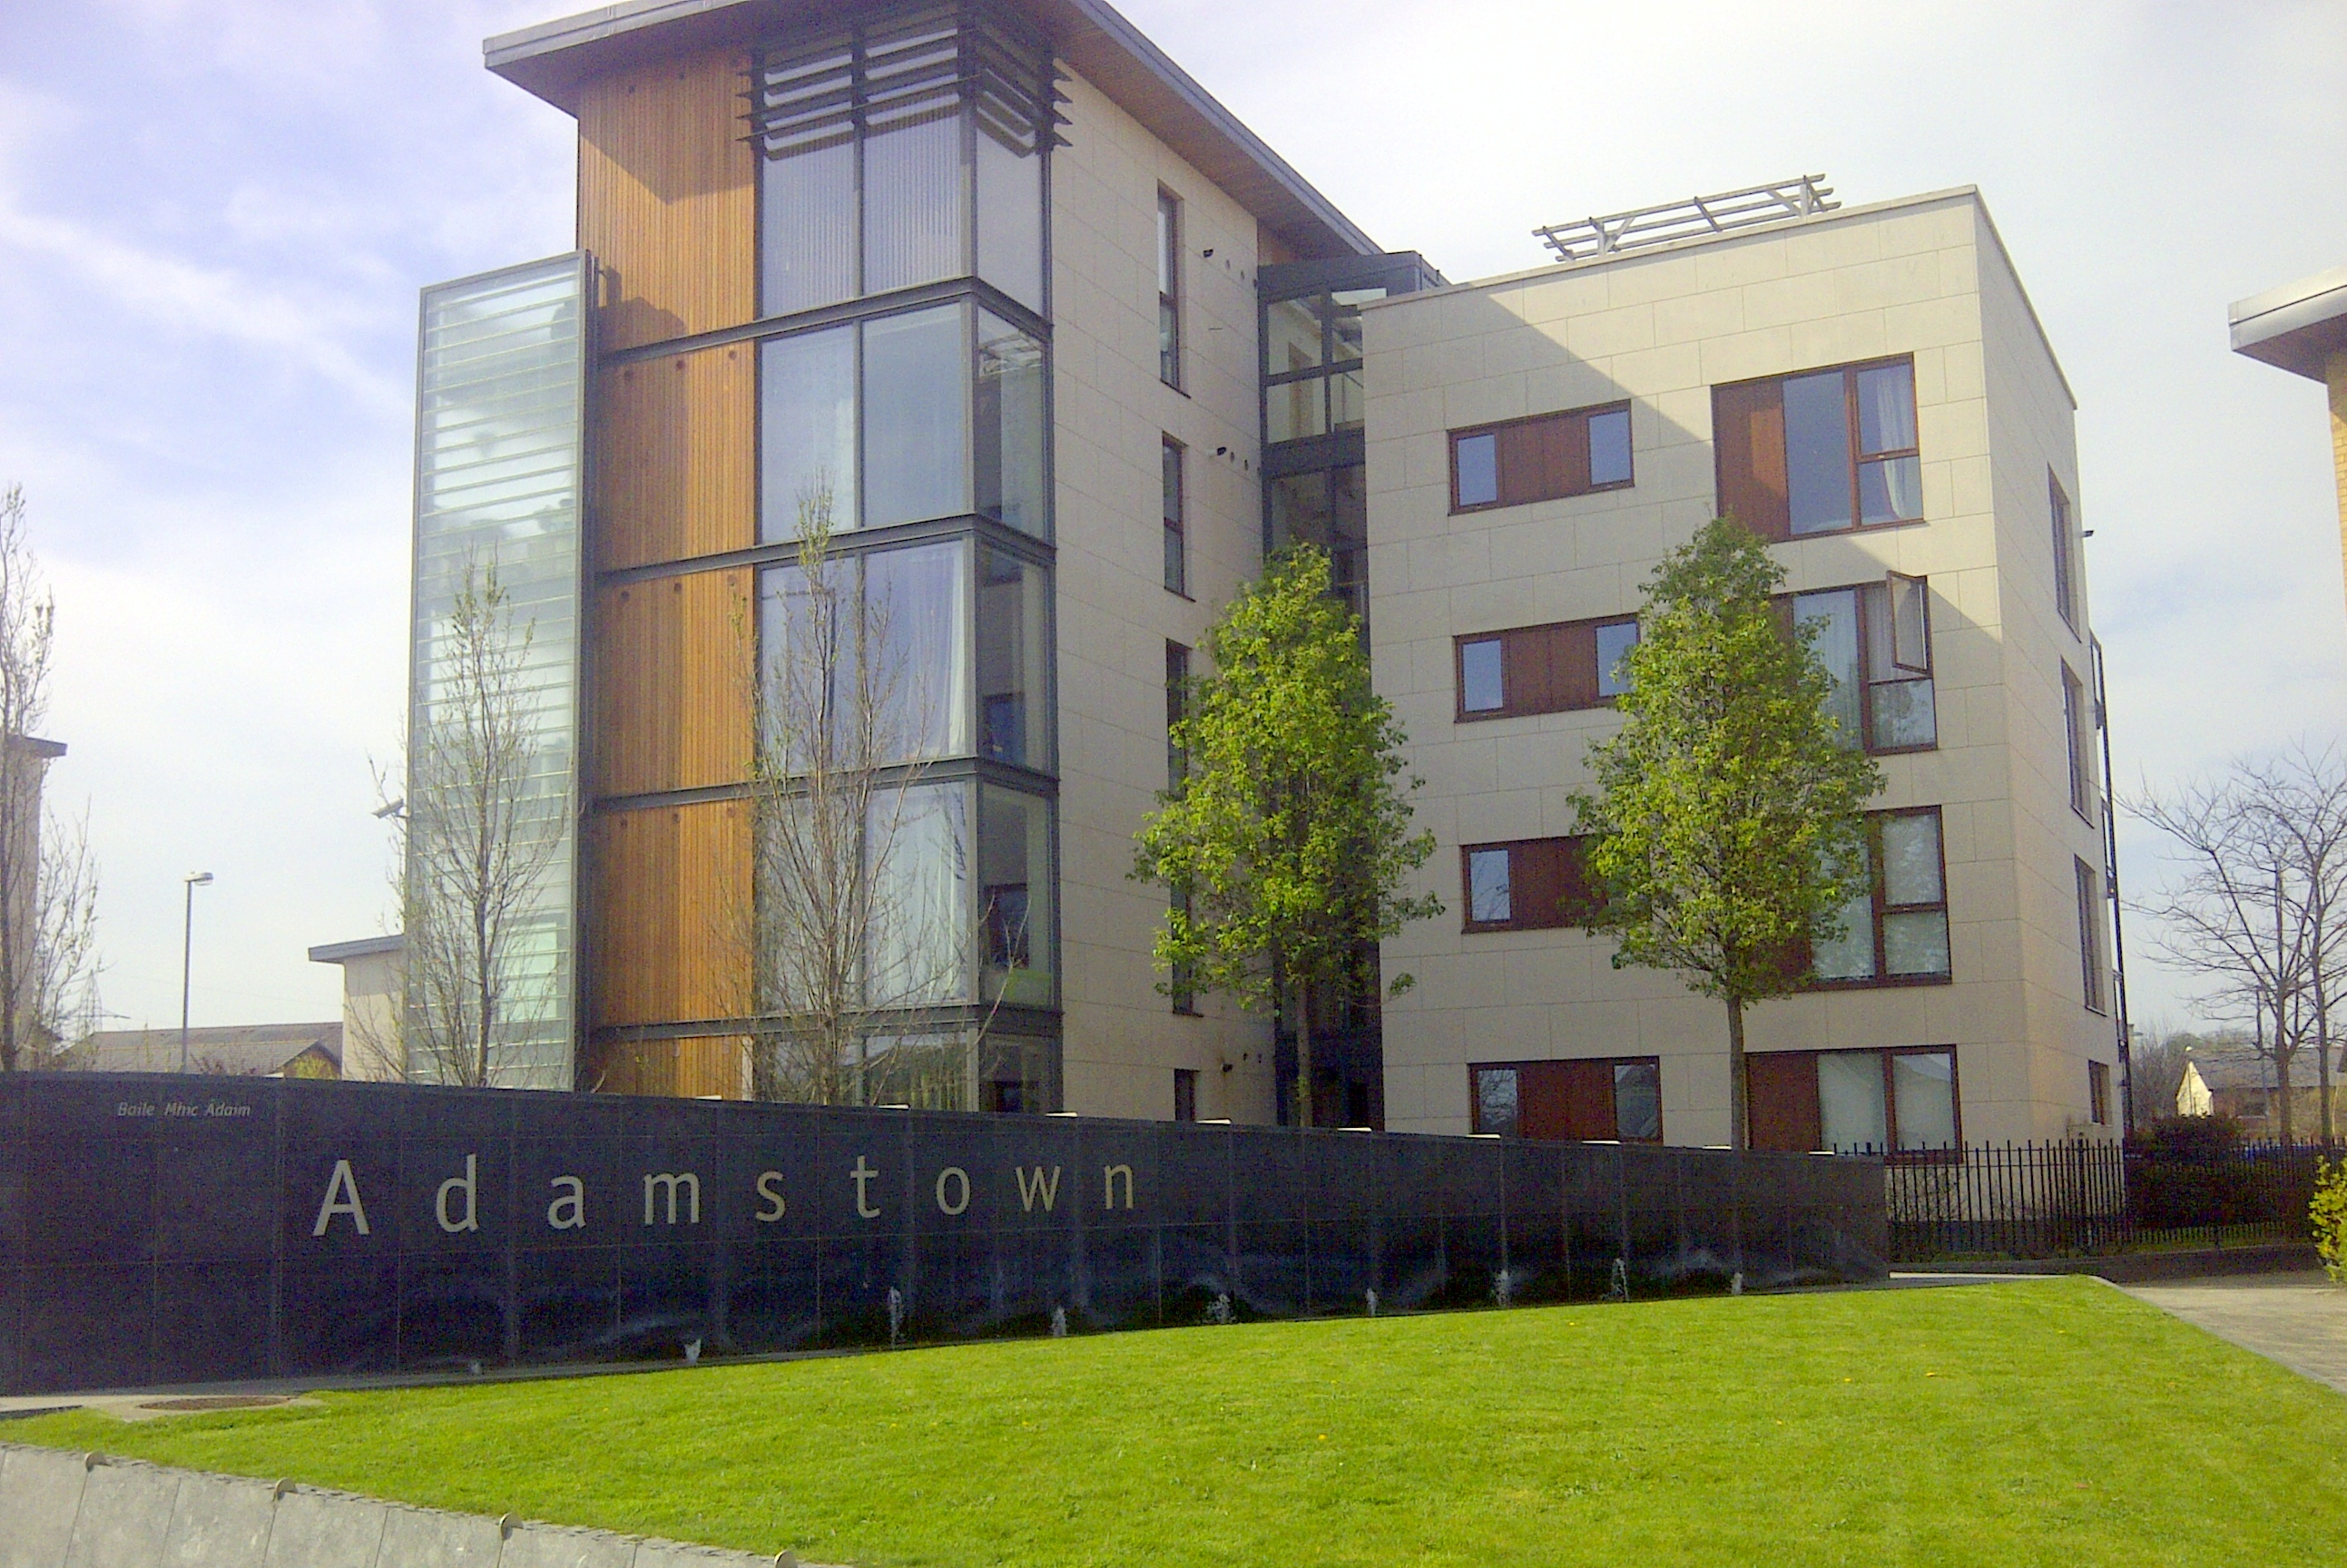 The Bbc Condemms Adamstown To The Ranks Of Priory Hall For No